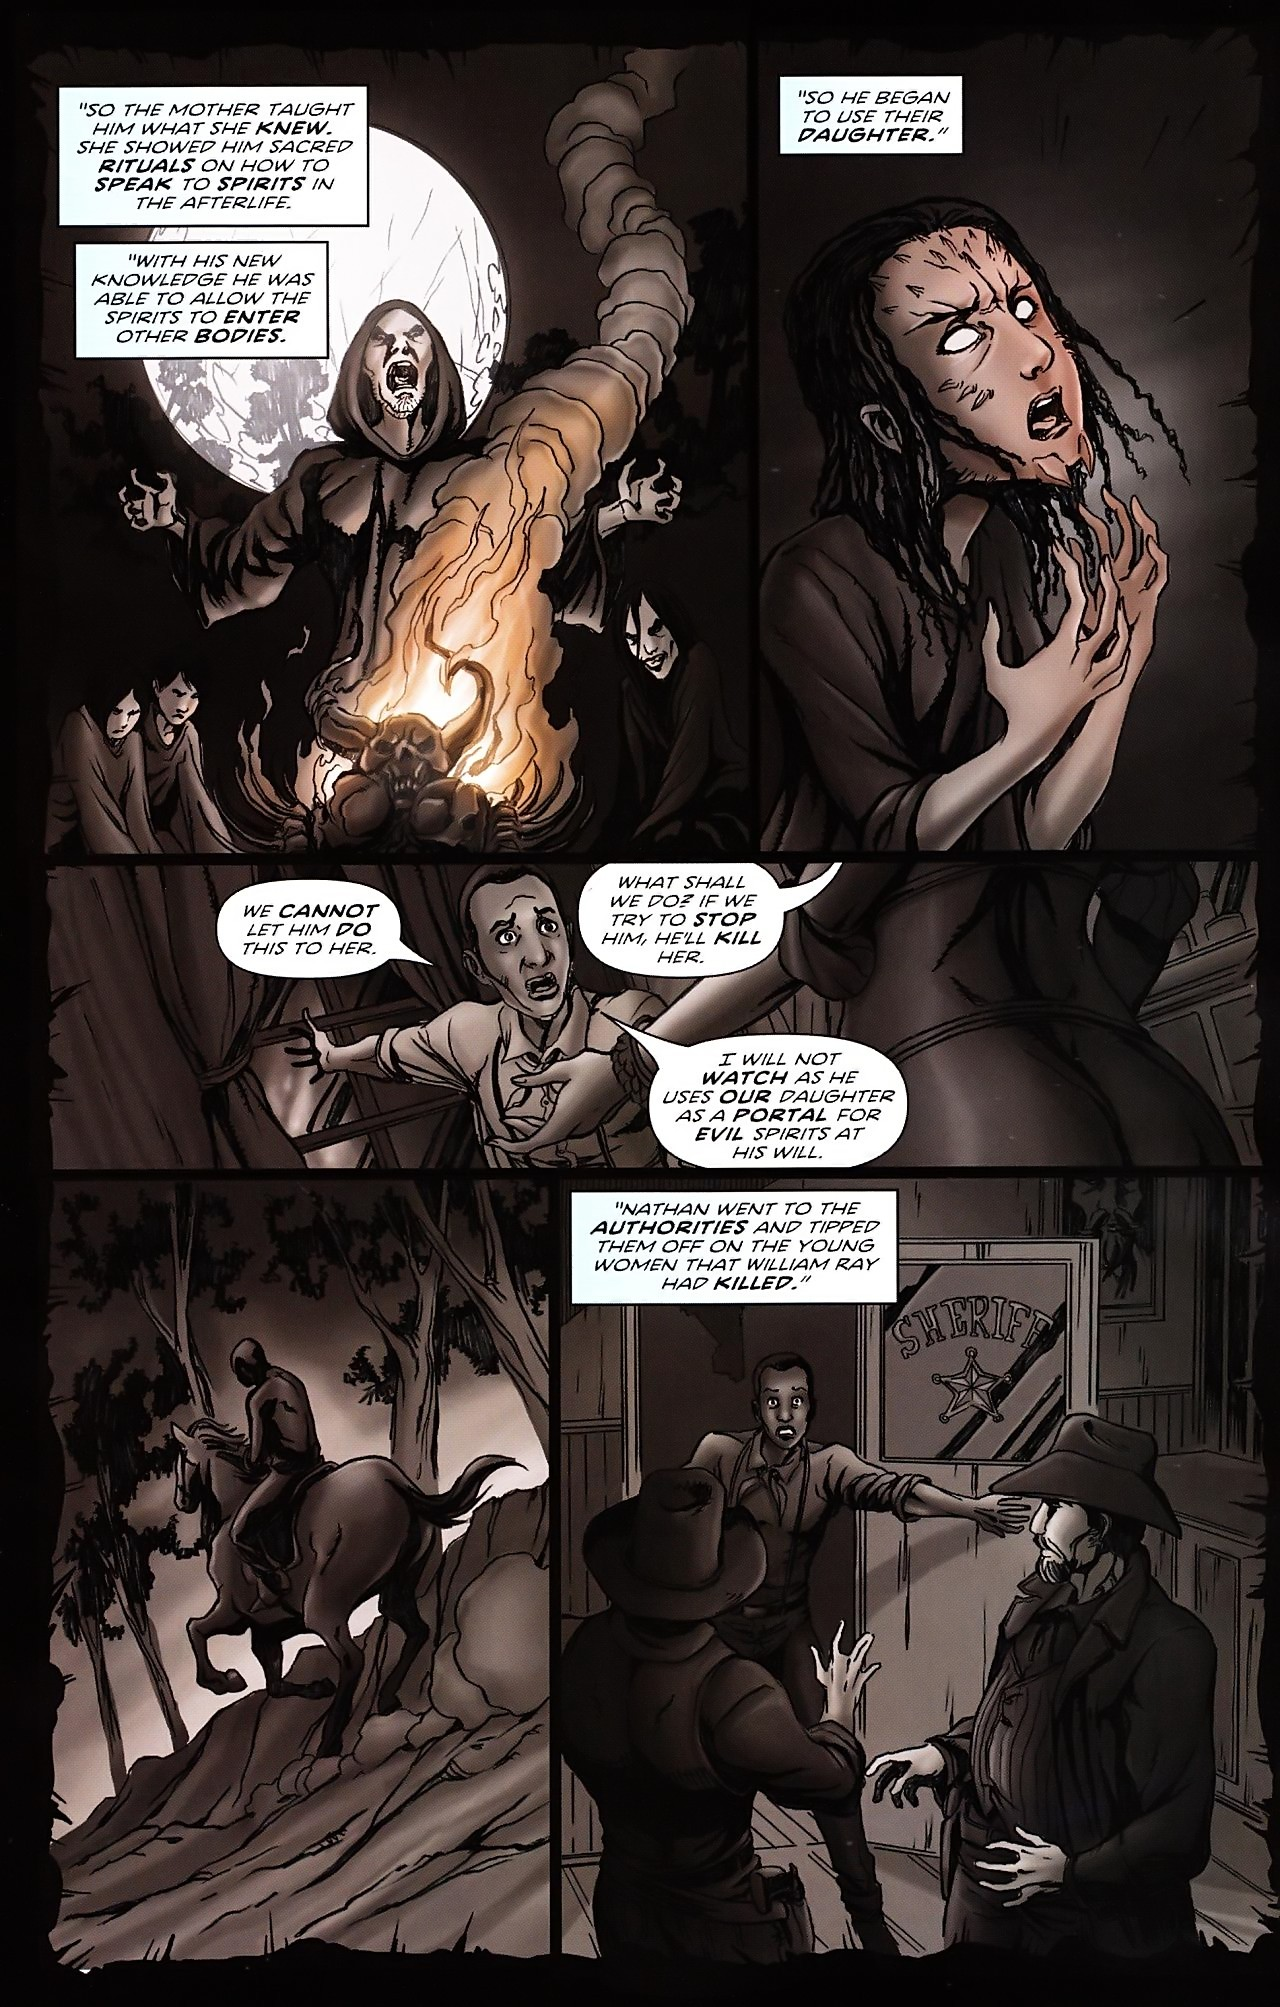 Read online Salem's Daughter: The Haunting comic -  Issue #4 - 19